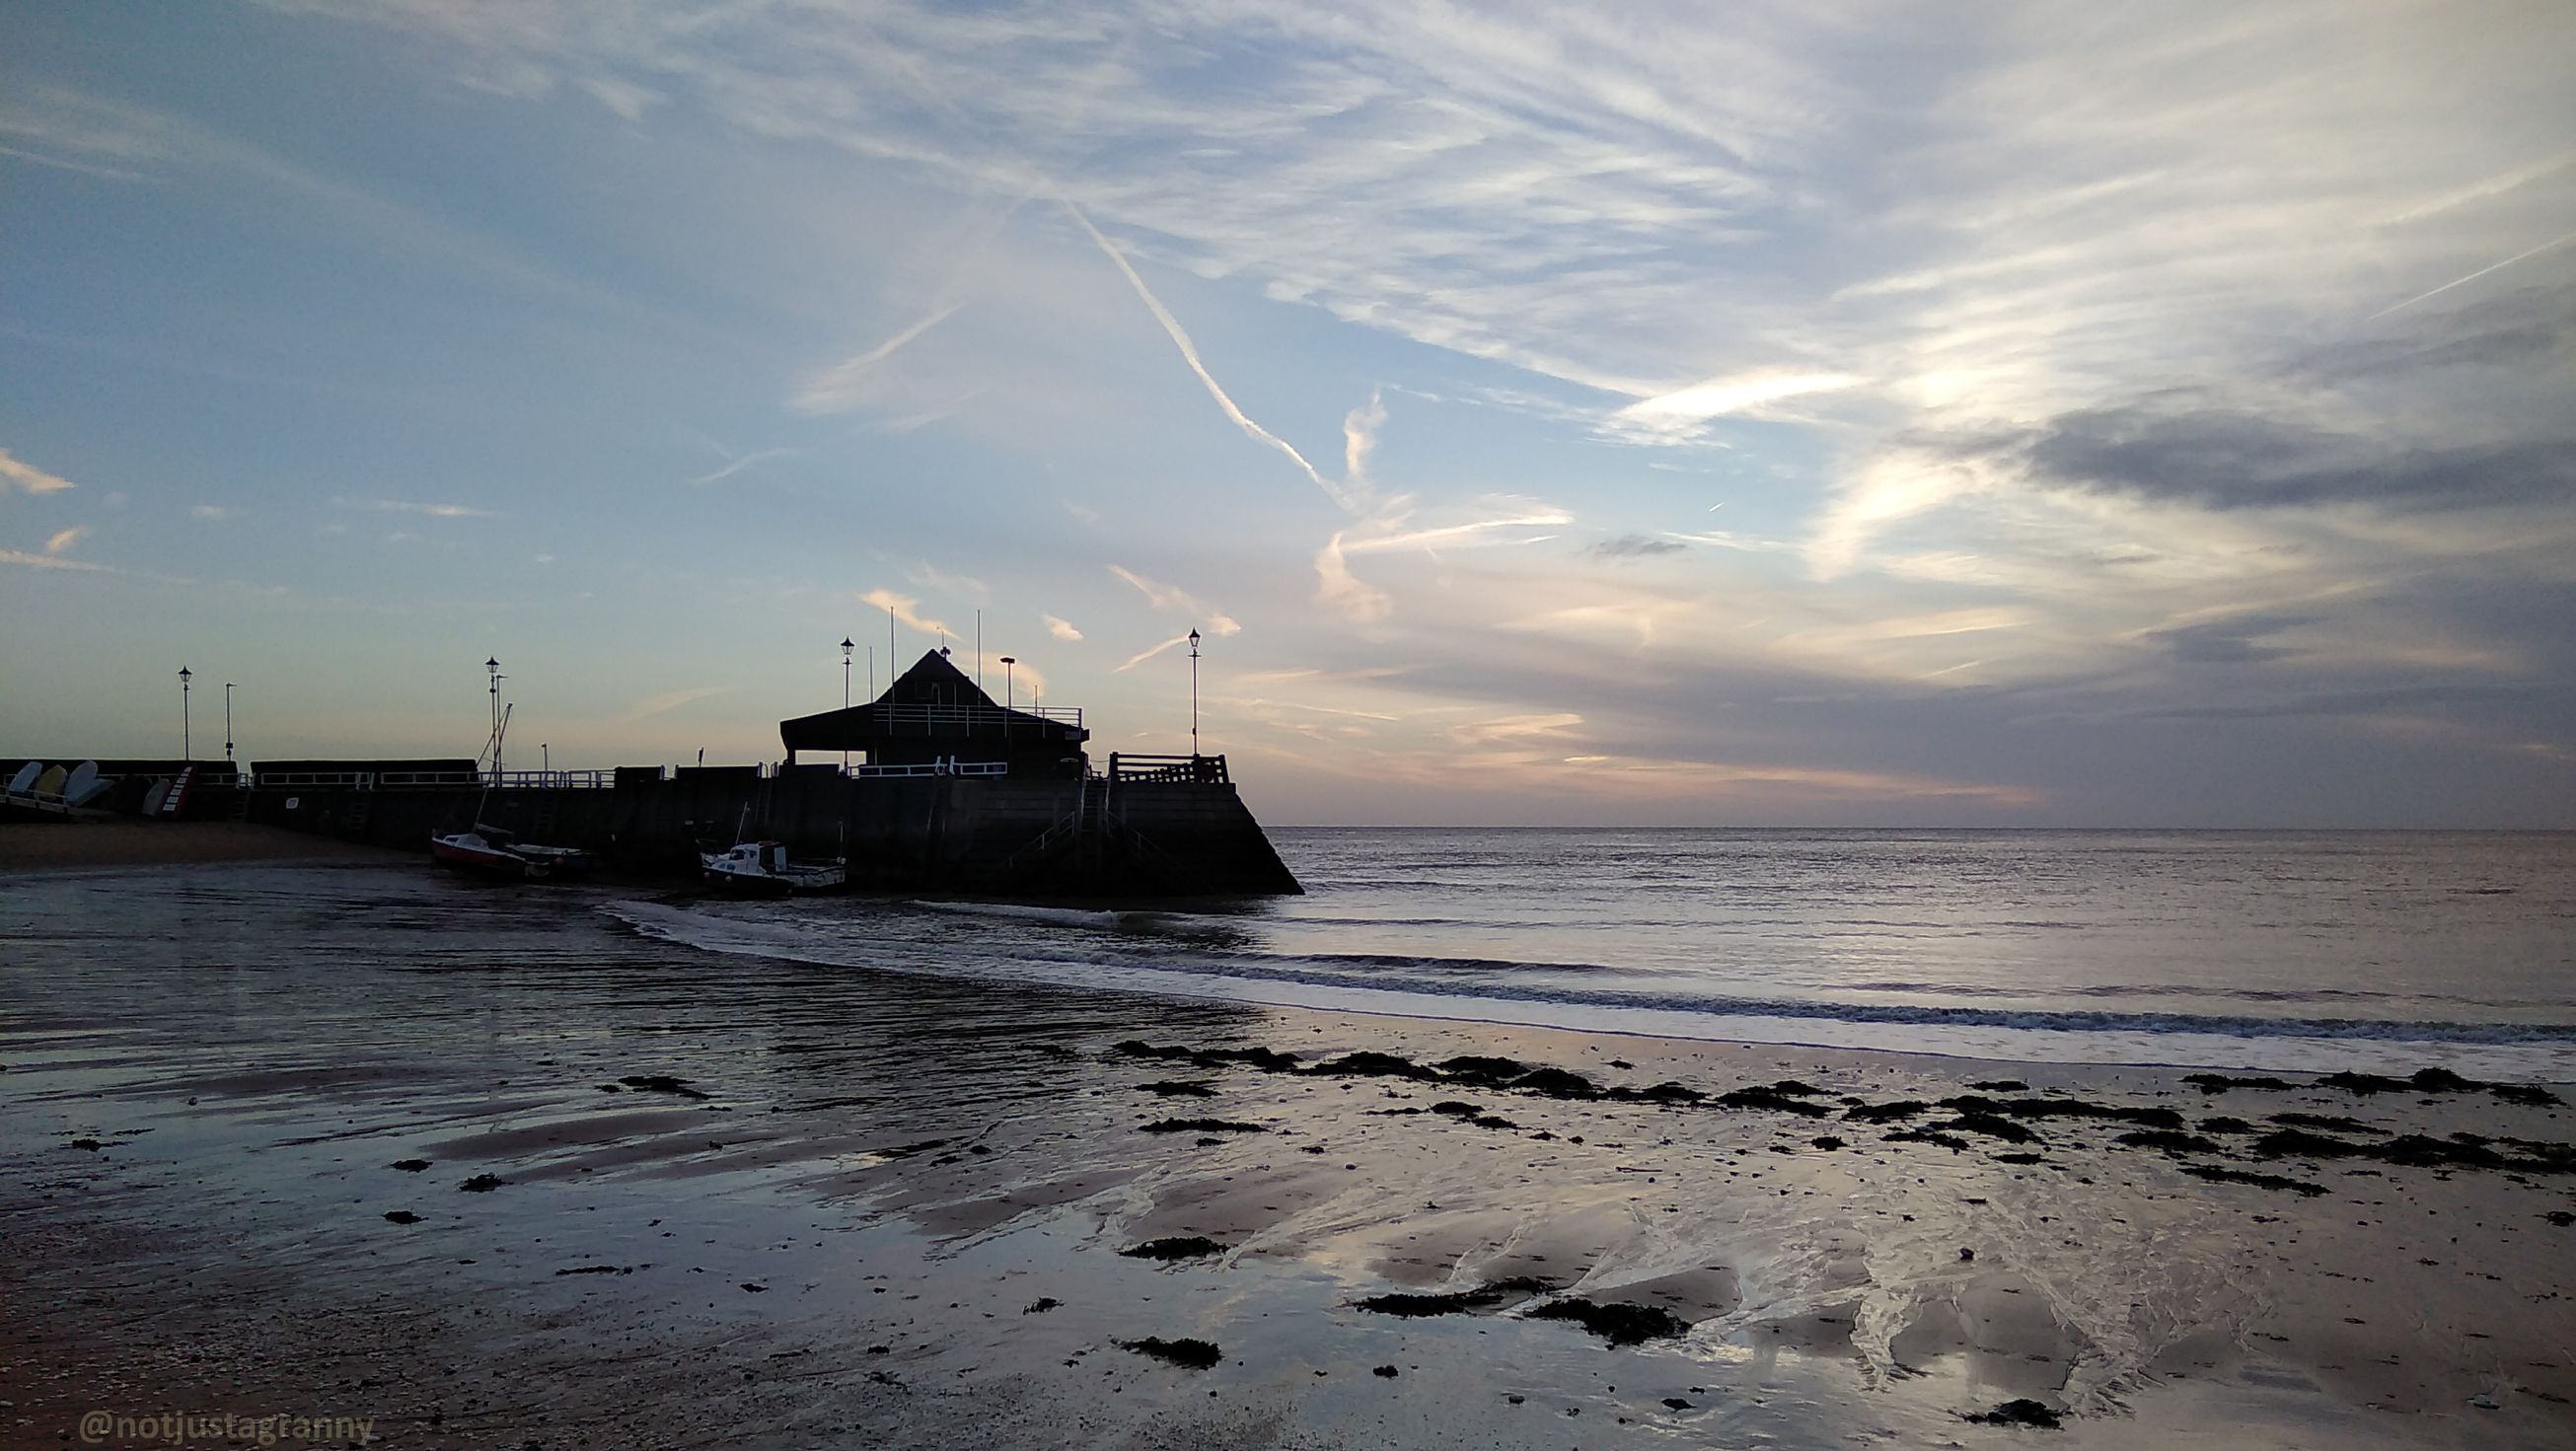 sunrise on the isle of thanet, flood warnings for kent, amy johnson story herne bay